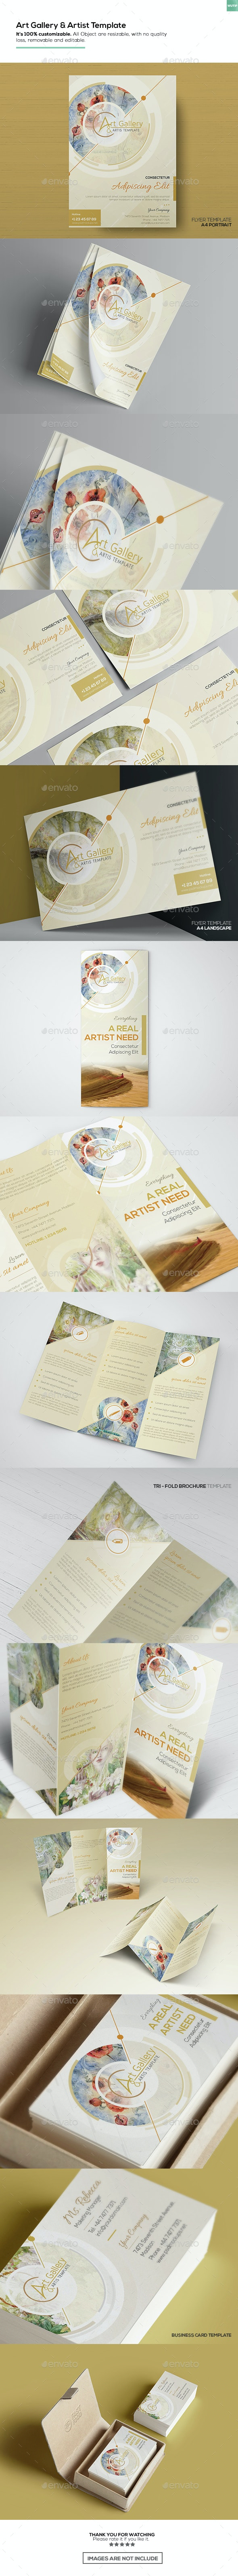 Art Gallery & Artist - Sets Template - Commerce Flyers